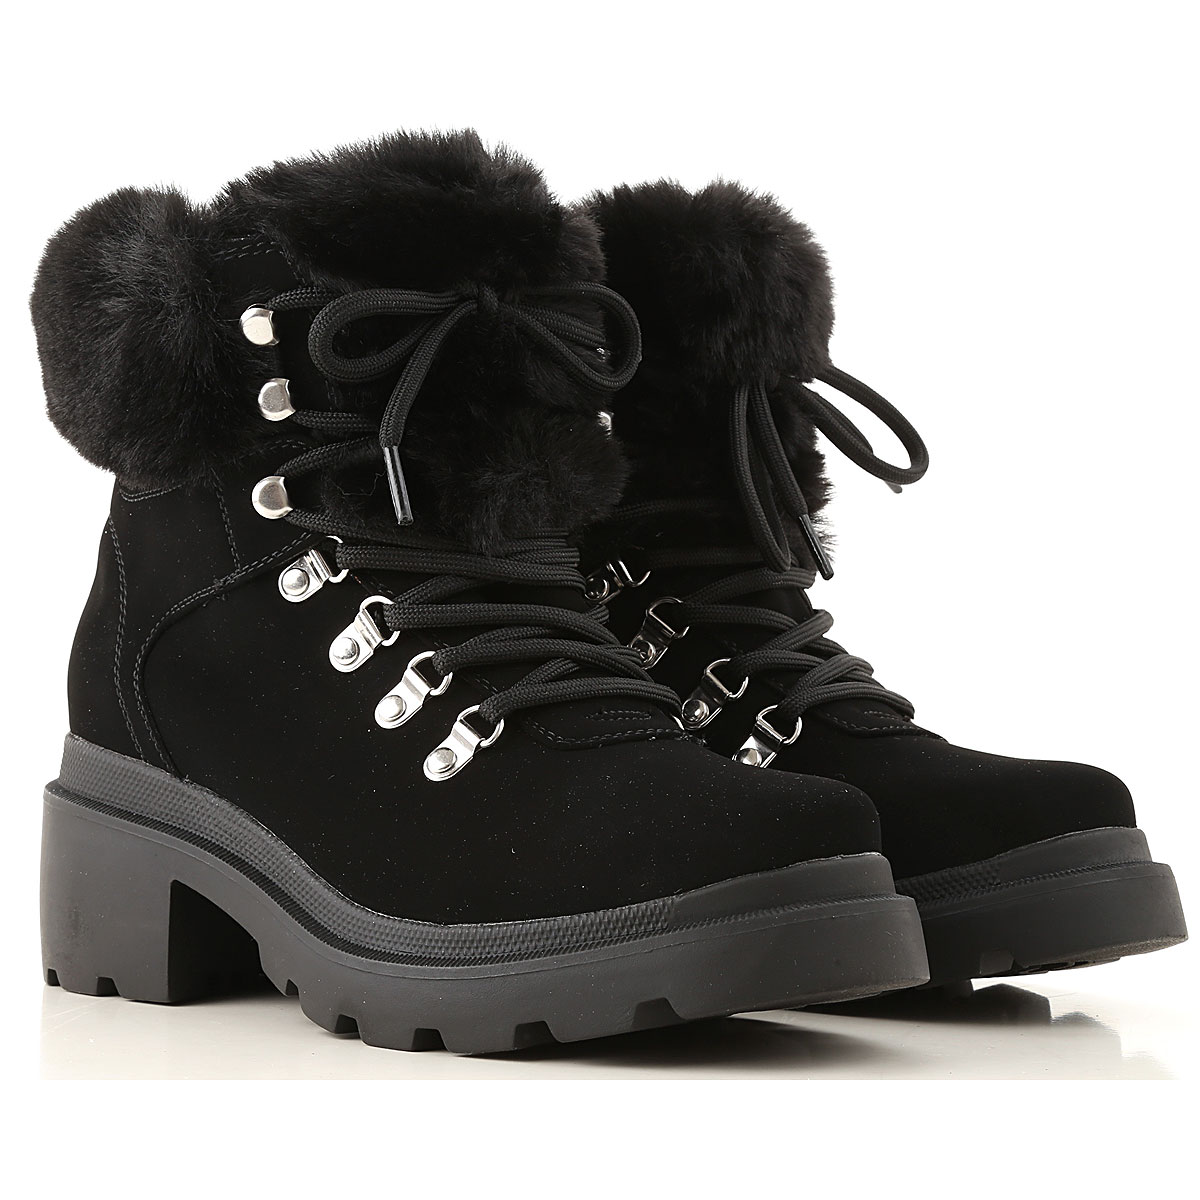 Kendall Kylie Boots for Women, Booties On Sale, Black, Eco Leather, 2019, 10 11 5 7 8 9